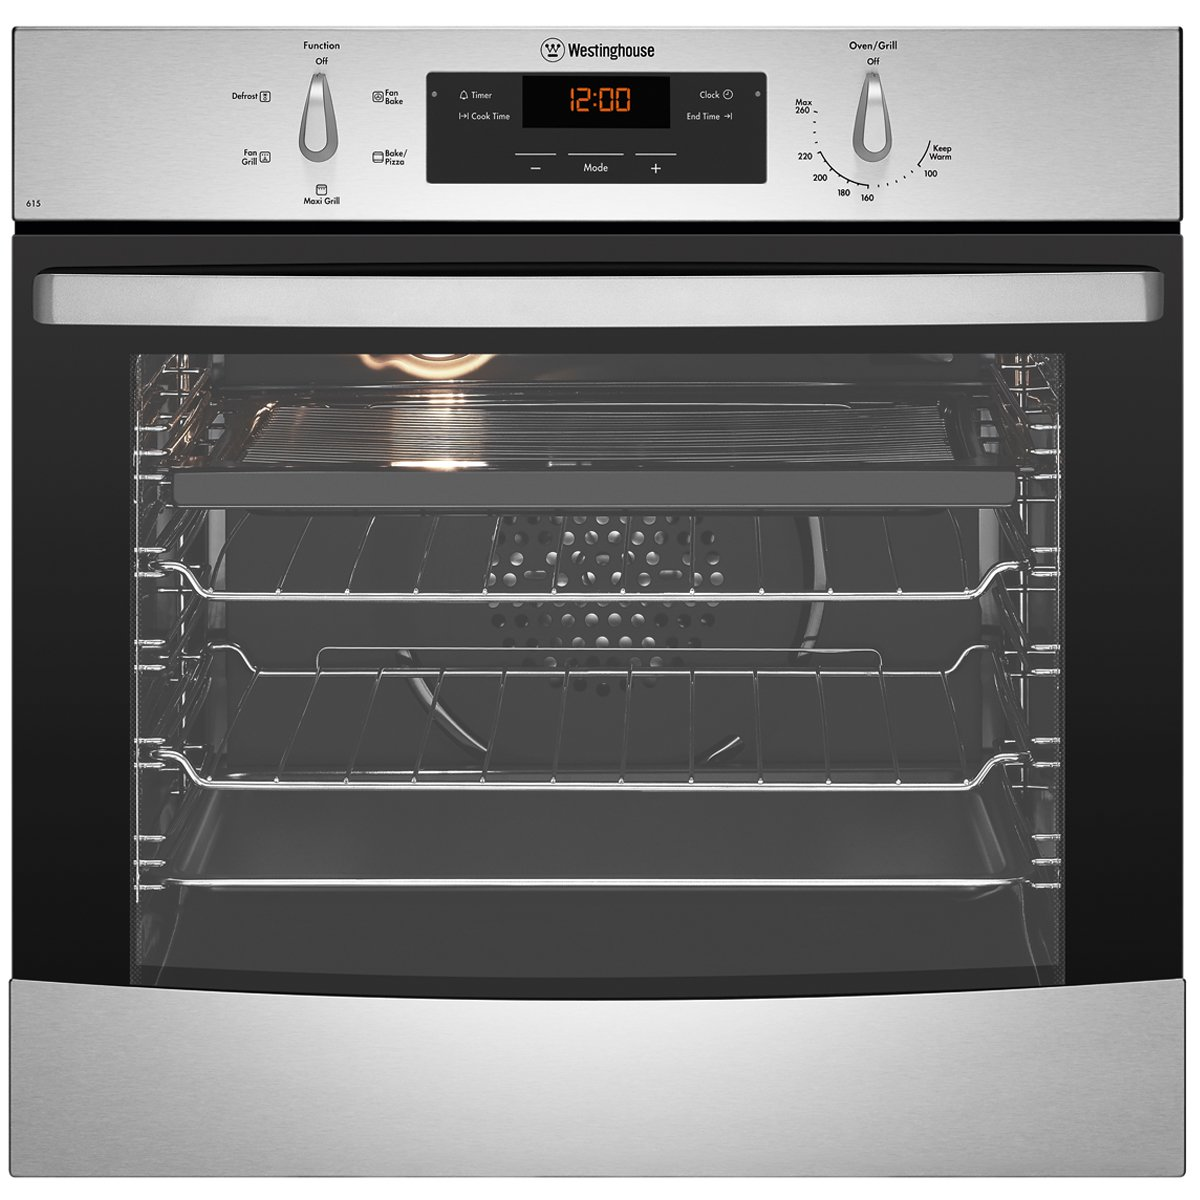 Westinghouse Electric Wall Oven WVE615S Hero Image high.jpeg